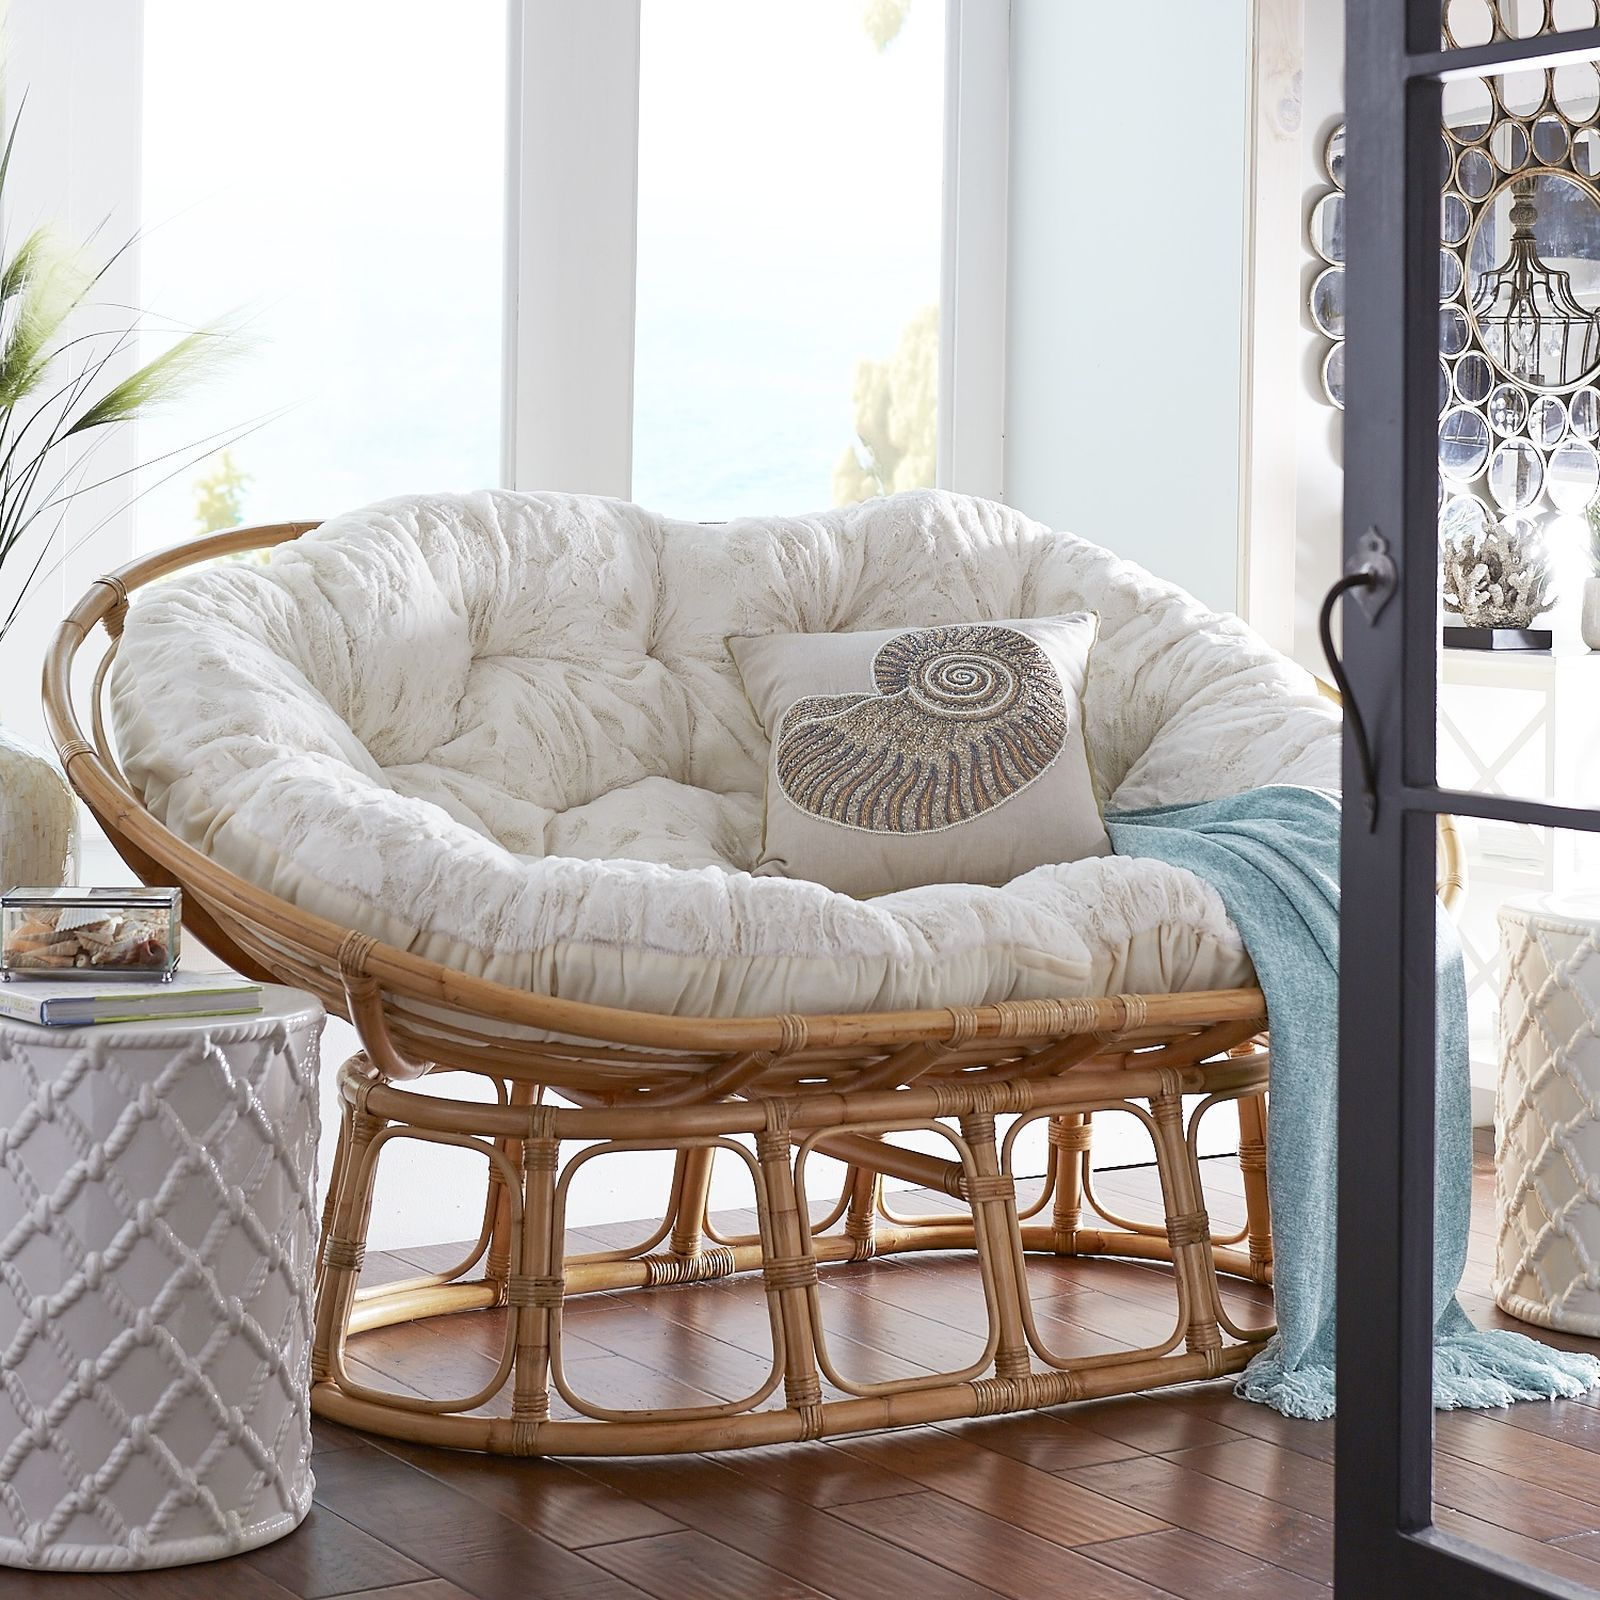 Elegant All The Appeal And Comfort Of Our Iconic Papasan Chairu2014and Then Some. With  Room For Two, Itu0027s Twice As Nice With A Double Bowl Frame.